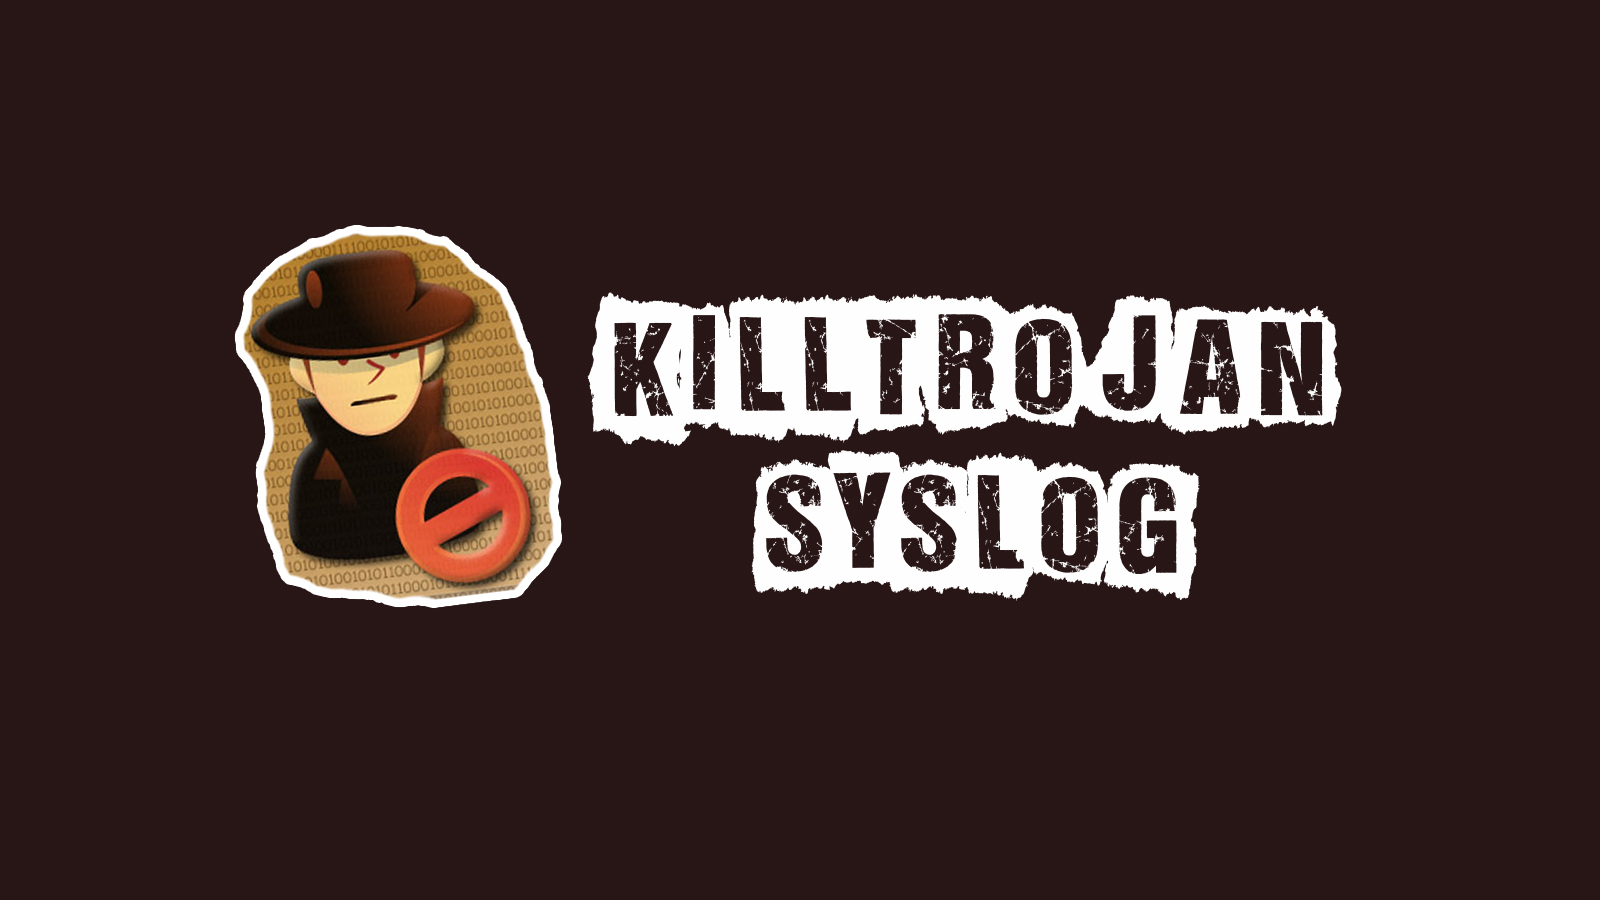 Killtrojan Syslog - Tool To Detect Malware Activity On a System